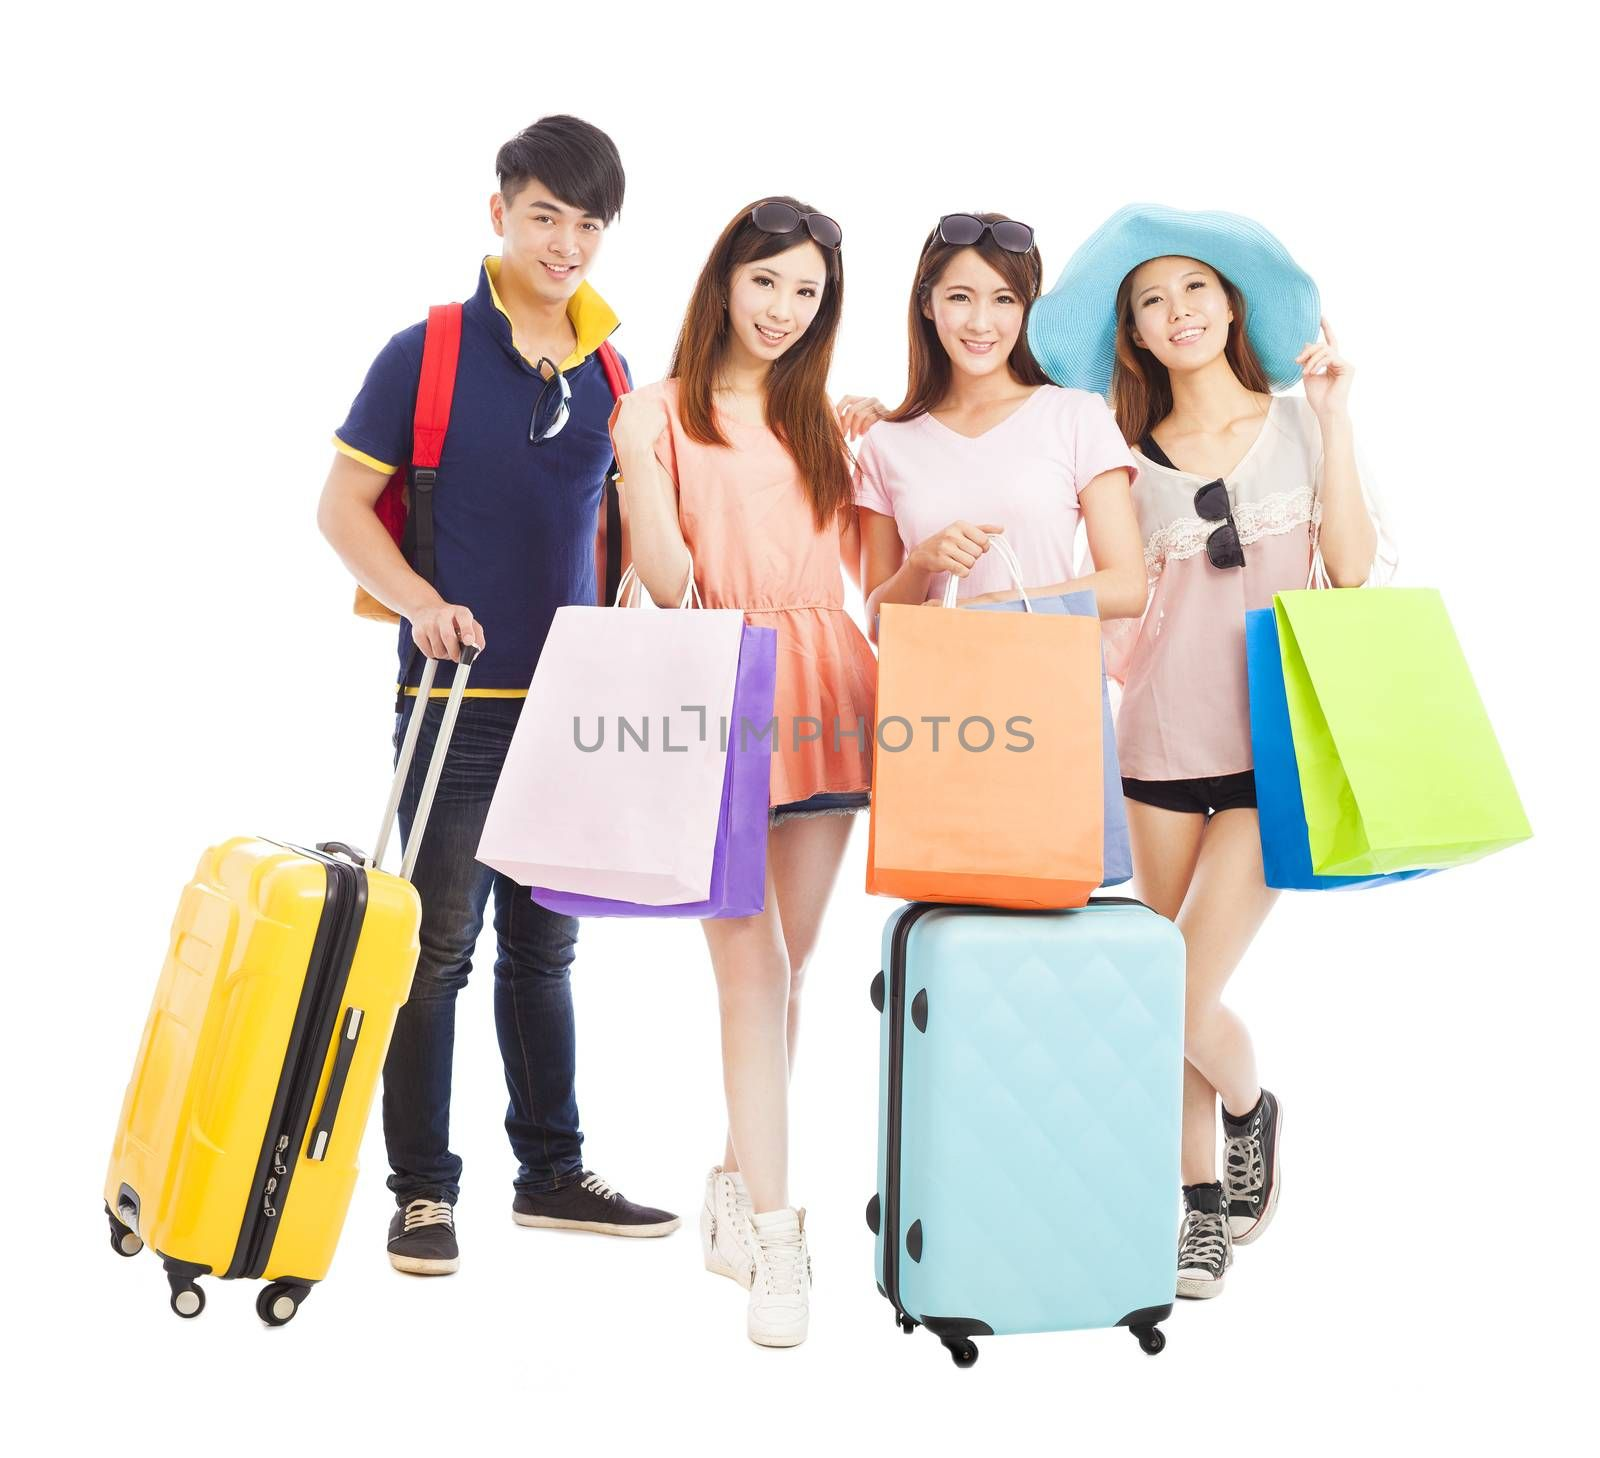 young people travel and shopping together